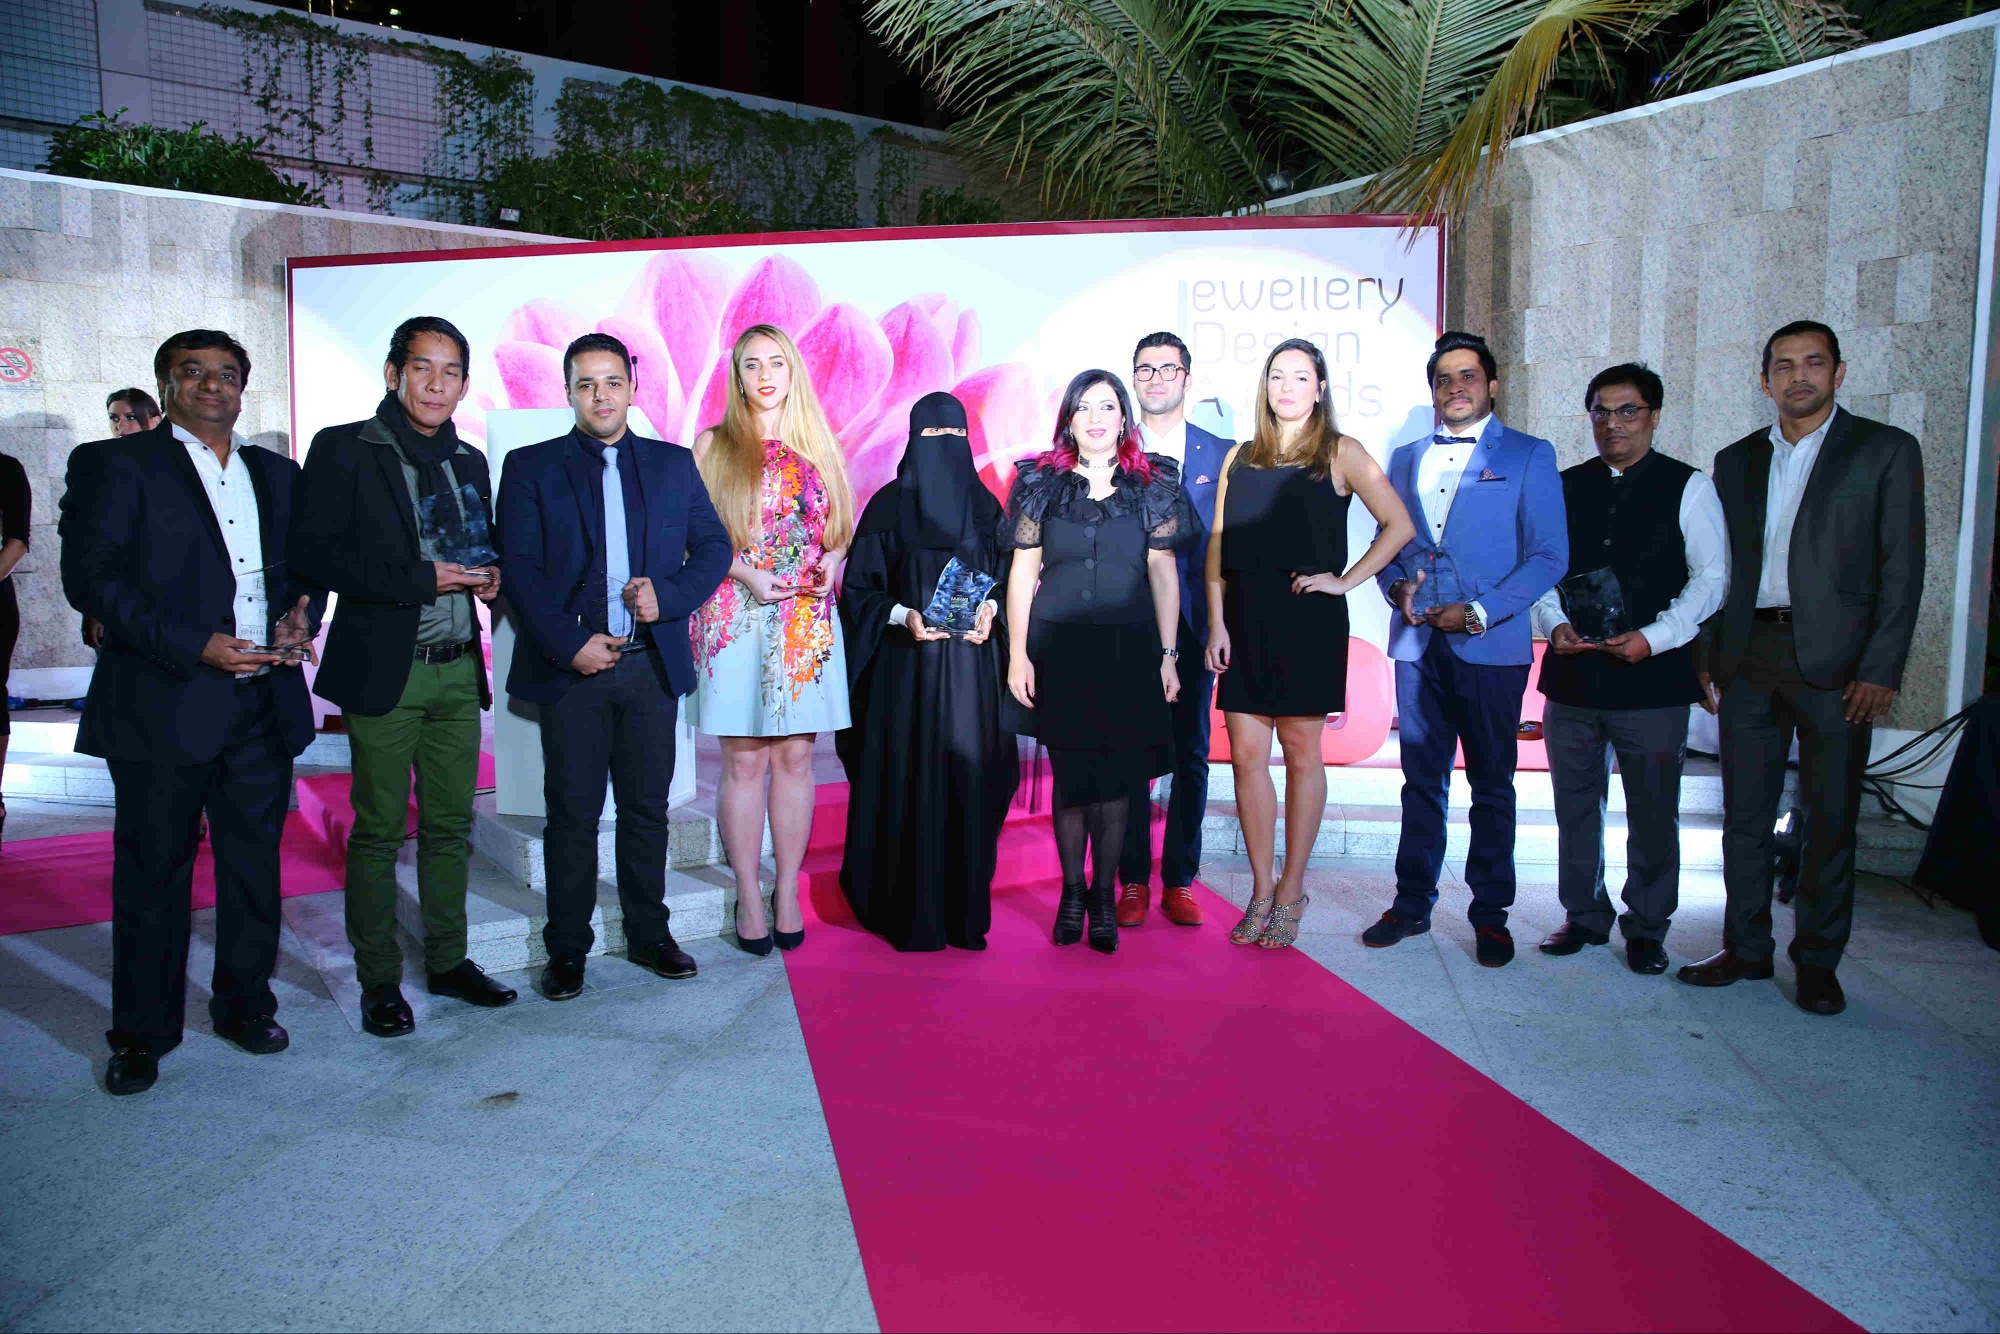 Best emerging talent in jewellery design celebrated at dubai international jewellery week awards ceremony